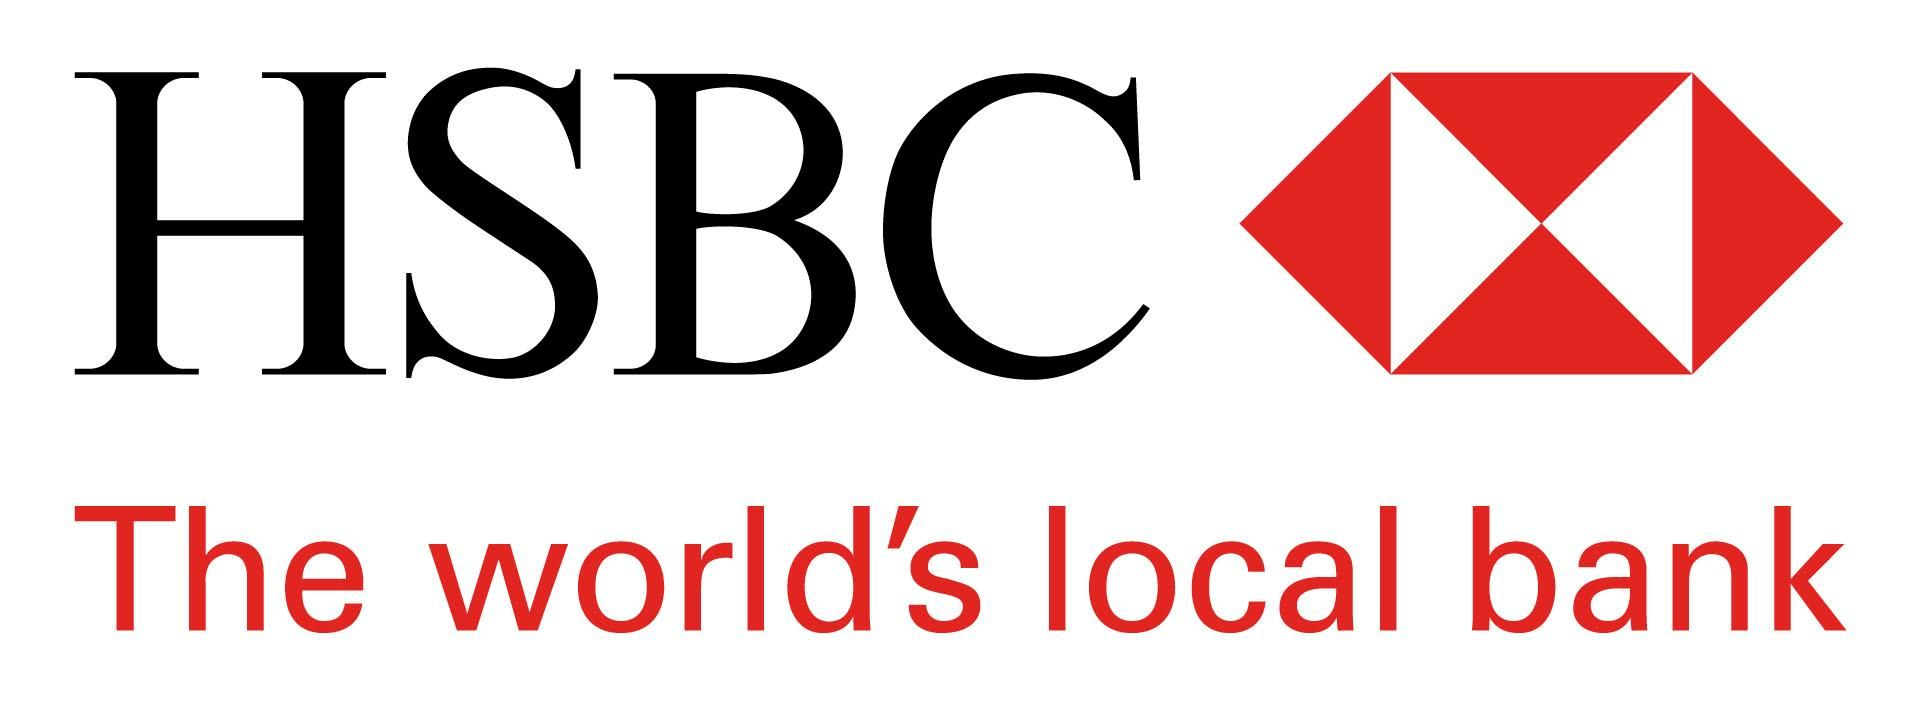 Hsbc bank credit cards instant approval cards hsbc bank credit cards instant approval reheart Images